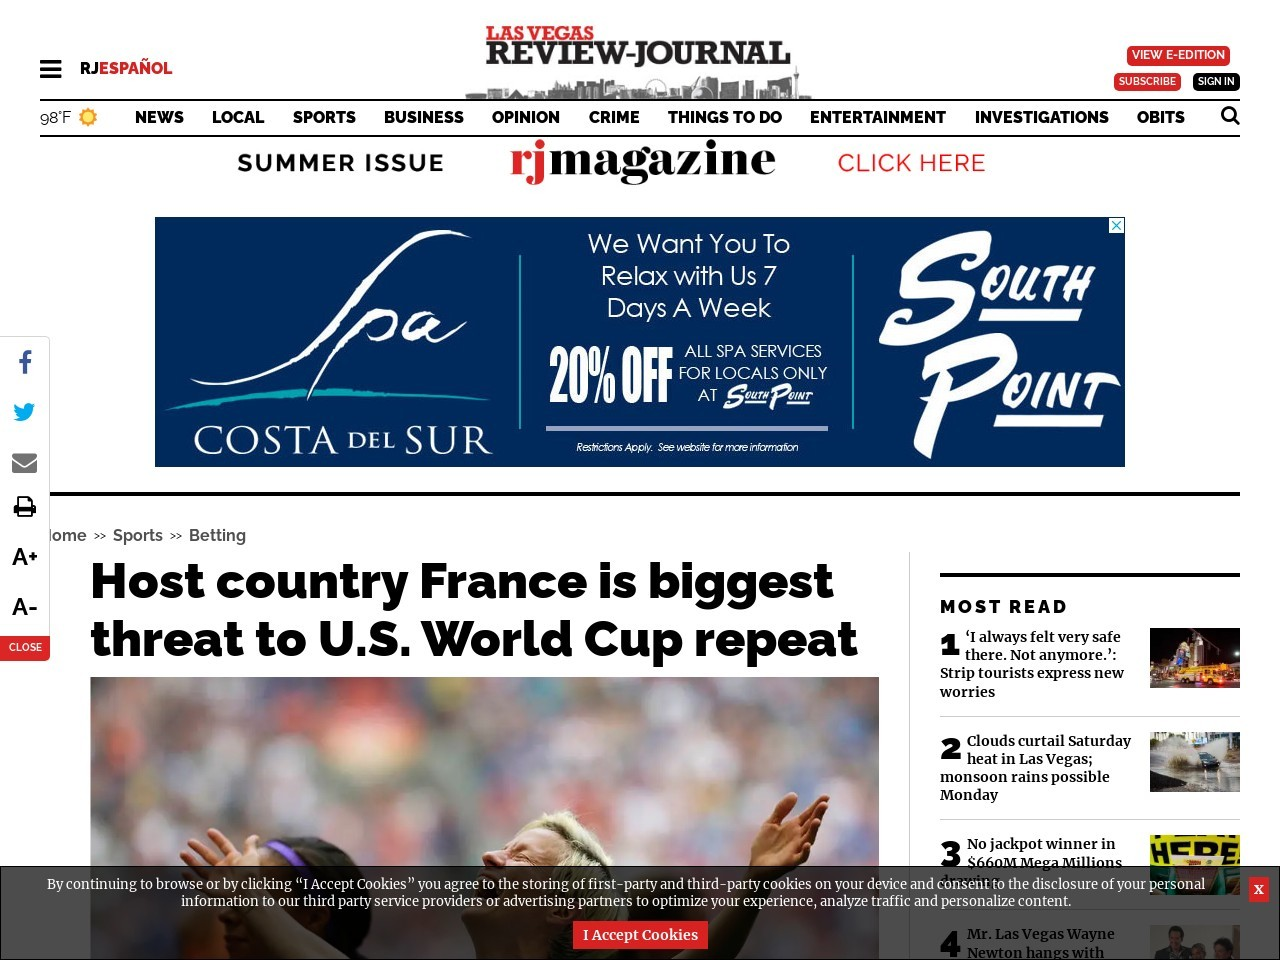 Host country France is biggest threat to U.S. World Cup repeat